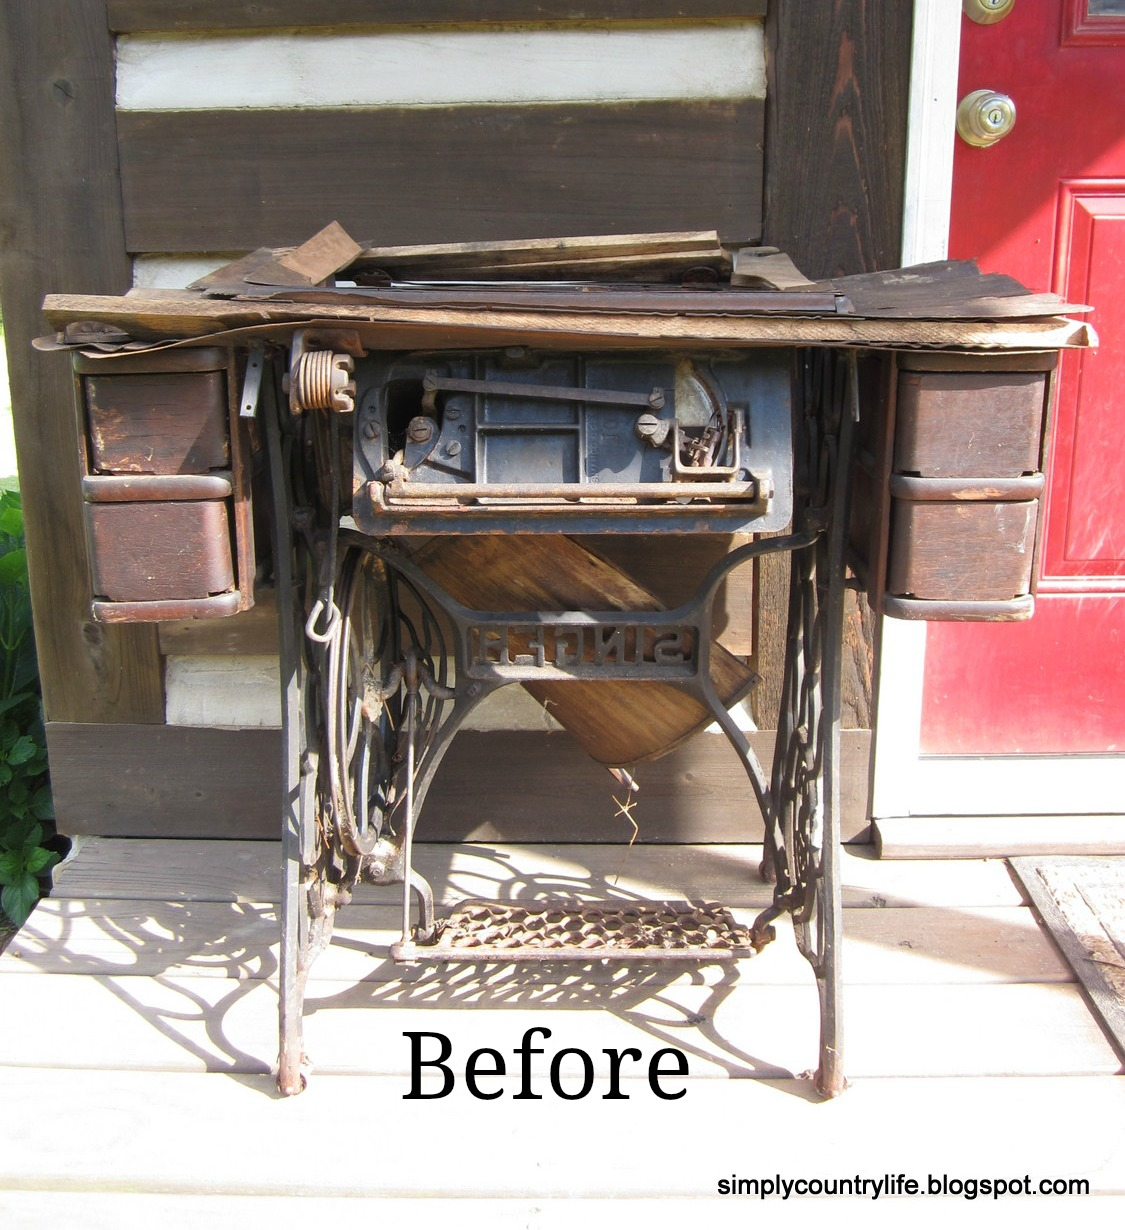 Simply country life antique singer sewing machine table makeover - Singer sewing machine table ...